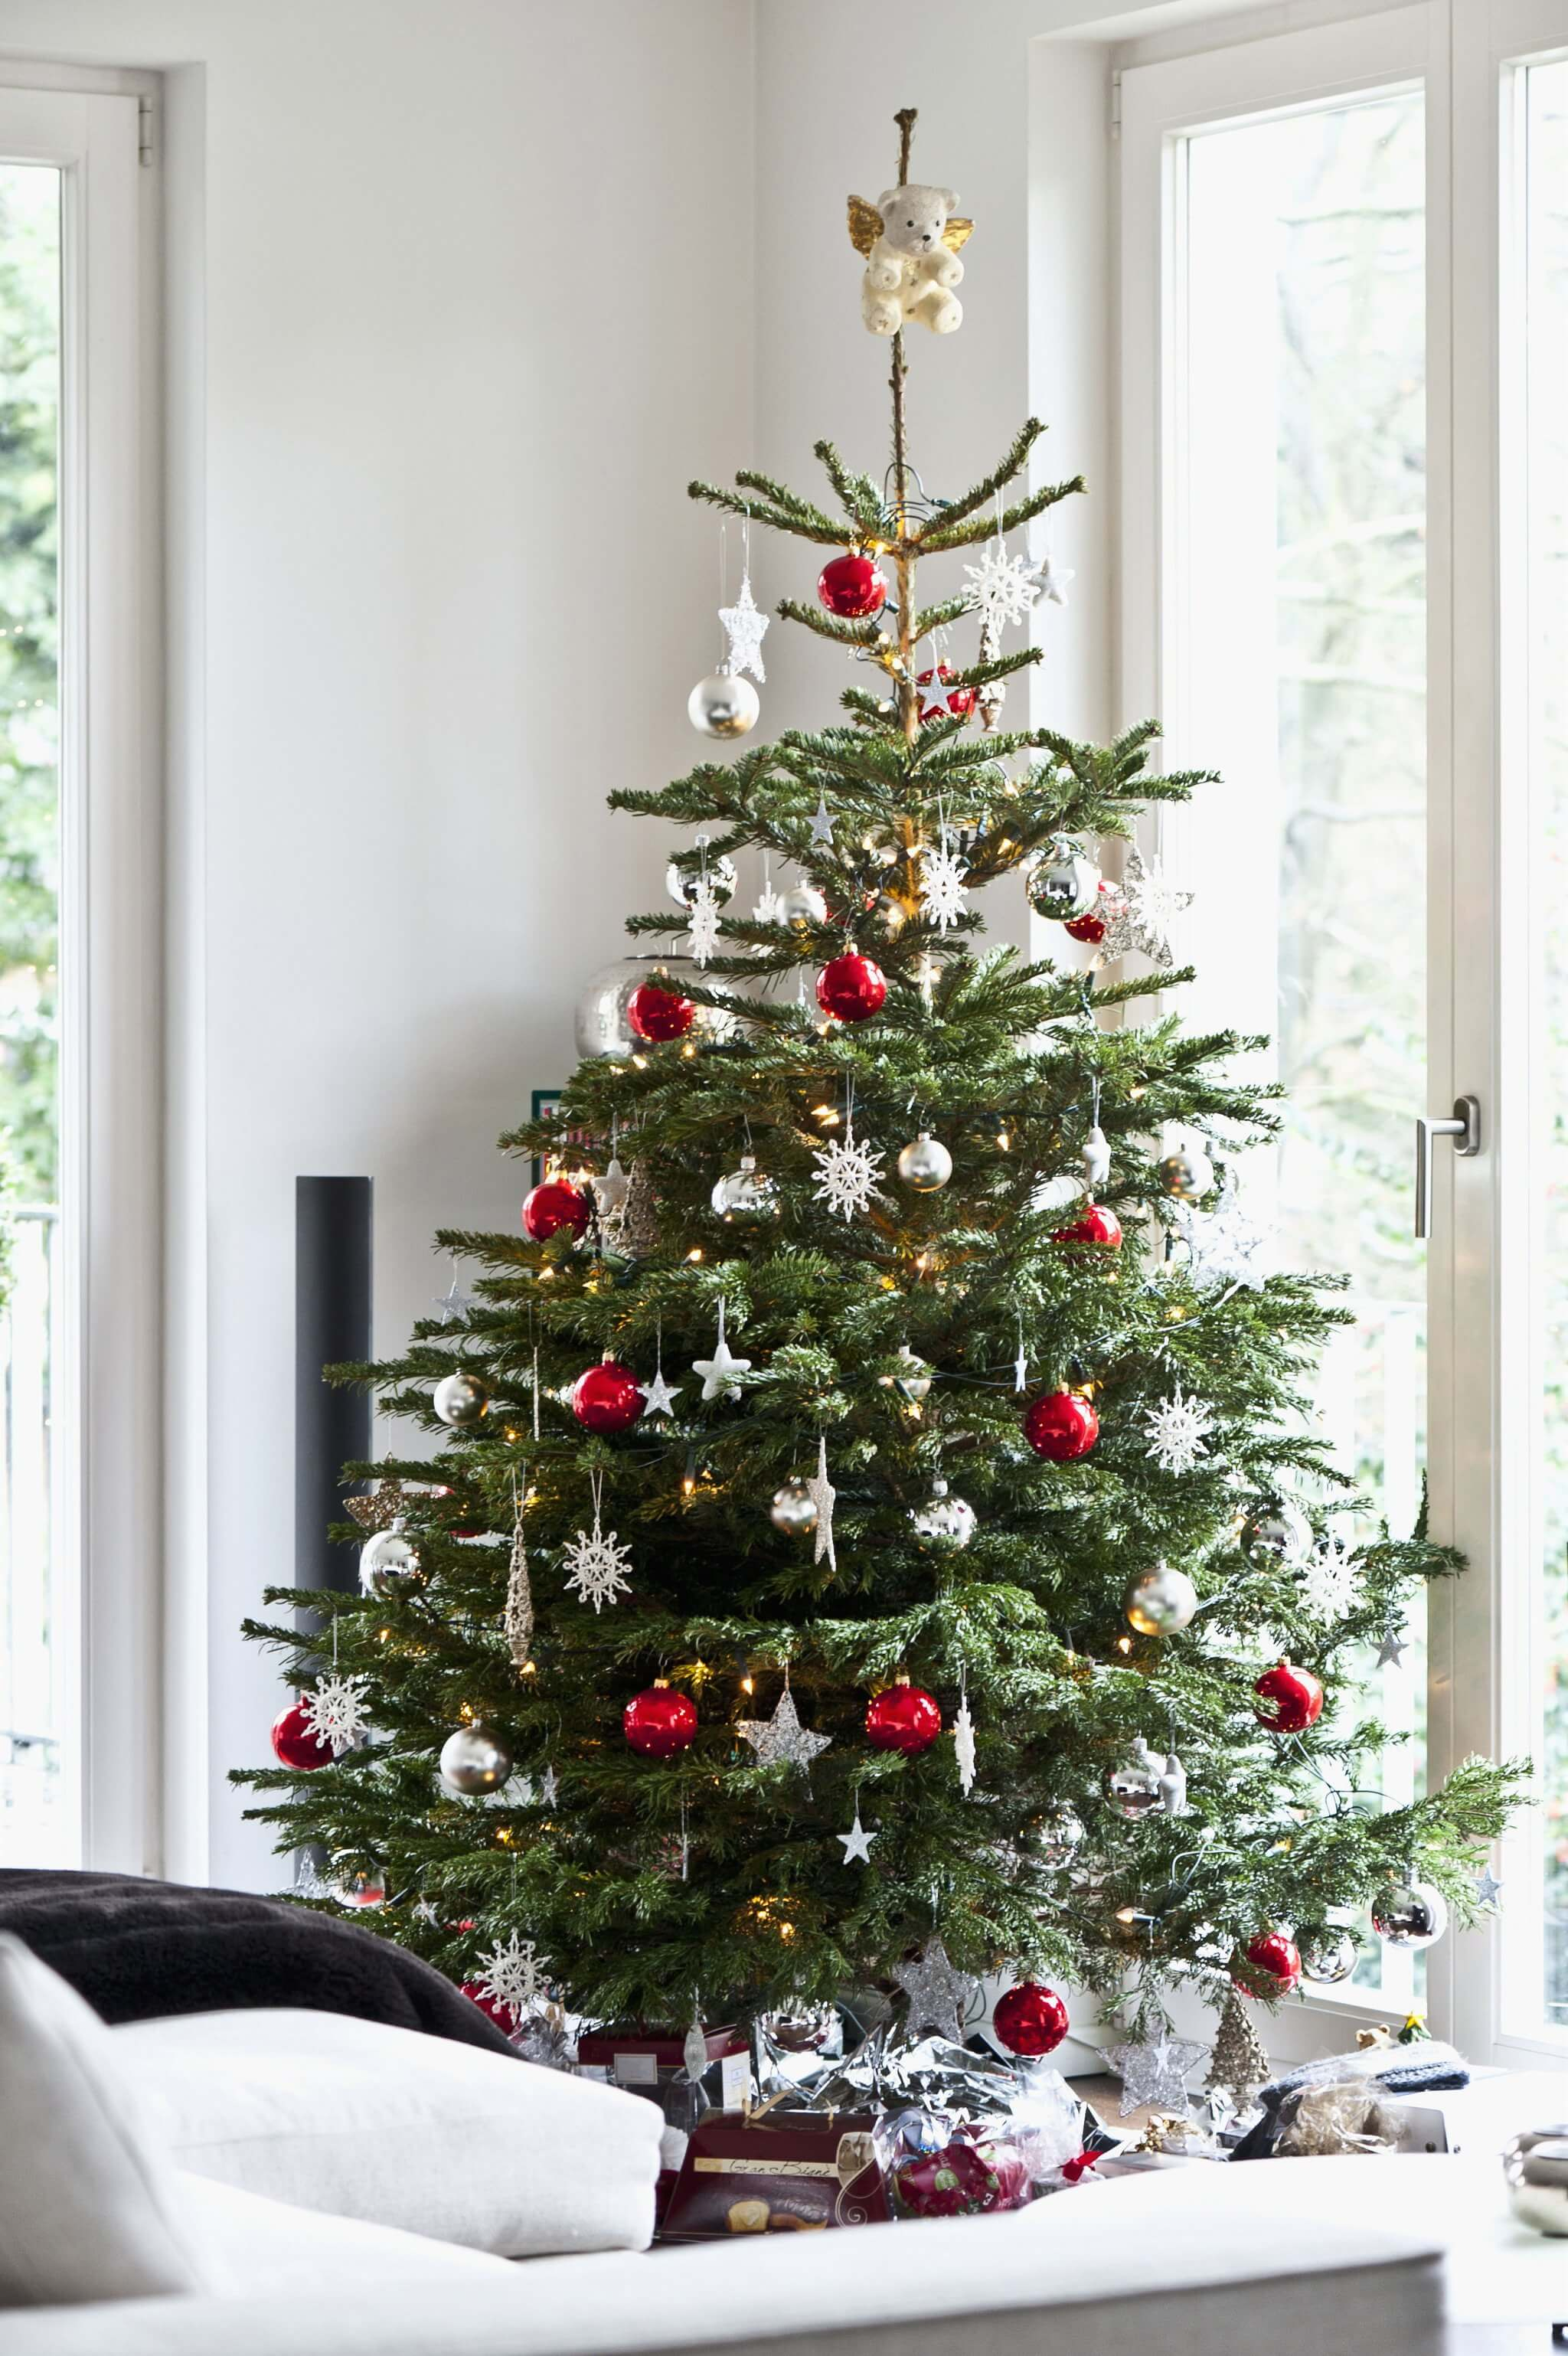 Decorating Your Holiday Tree Like a Pro | Best Way to Decorate Christmas Trees on a Budget: Inexpensive or Free & Easy Holiday Ornaments & Decorations